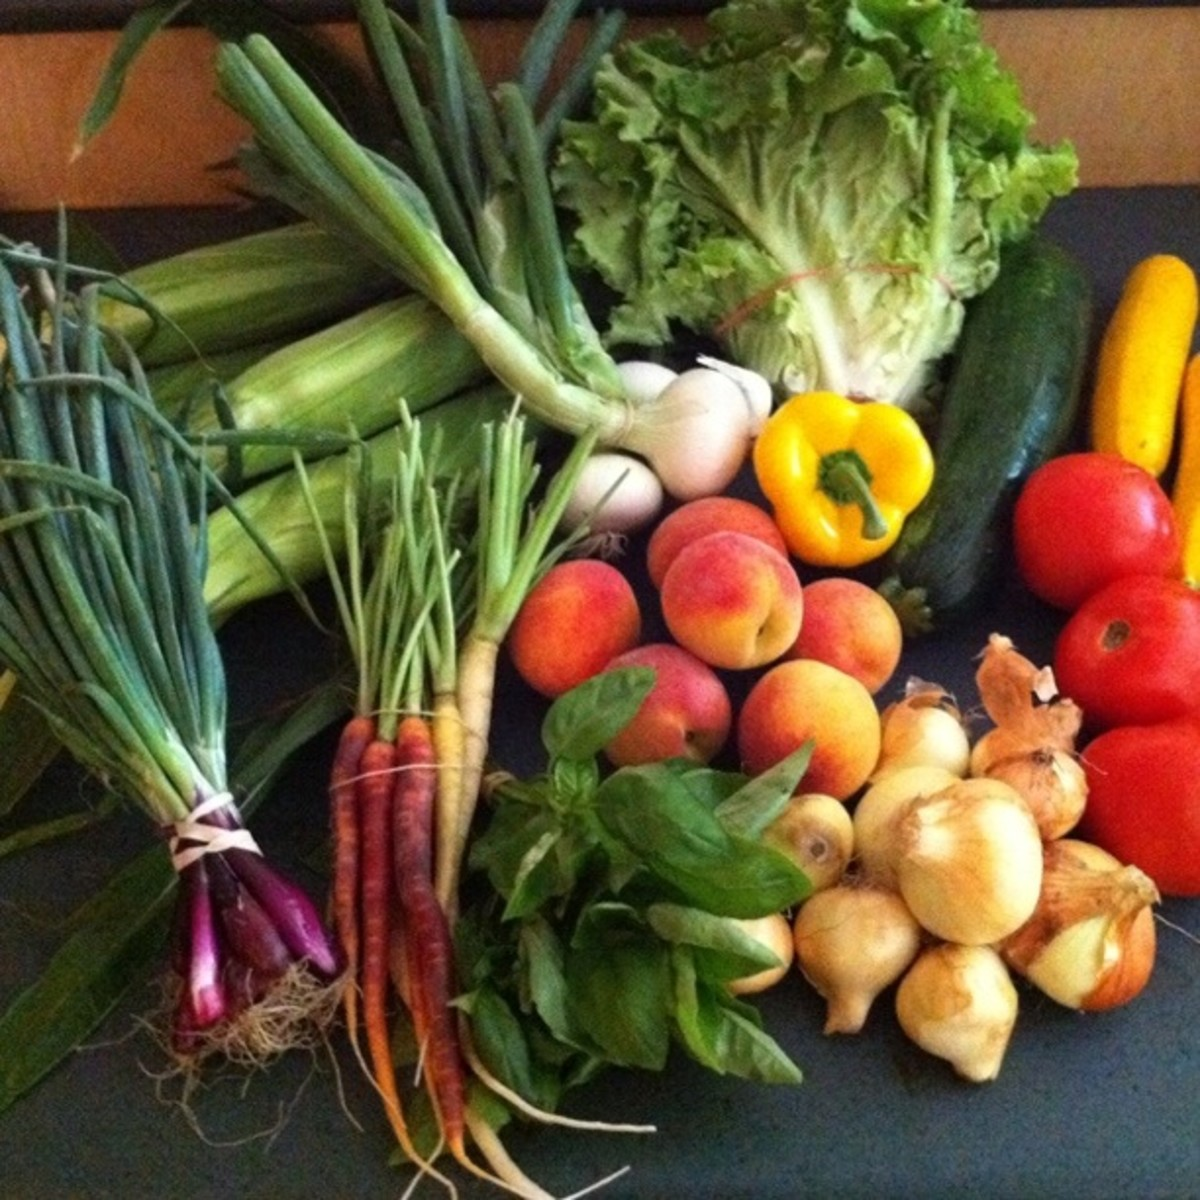 Plant a garden to grow your own delicious vegetables